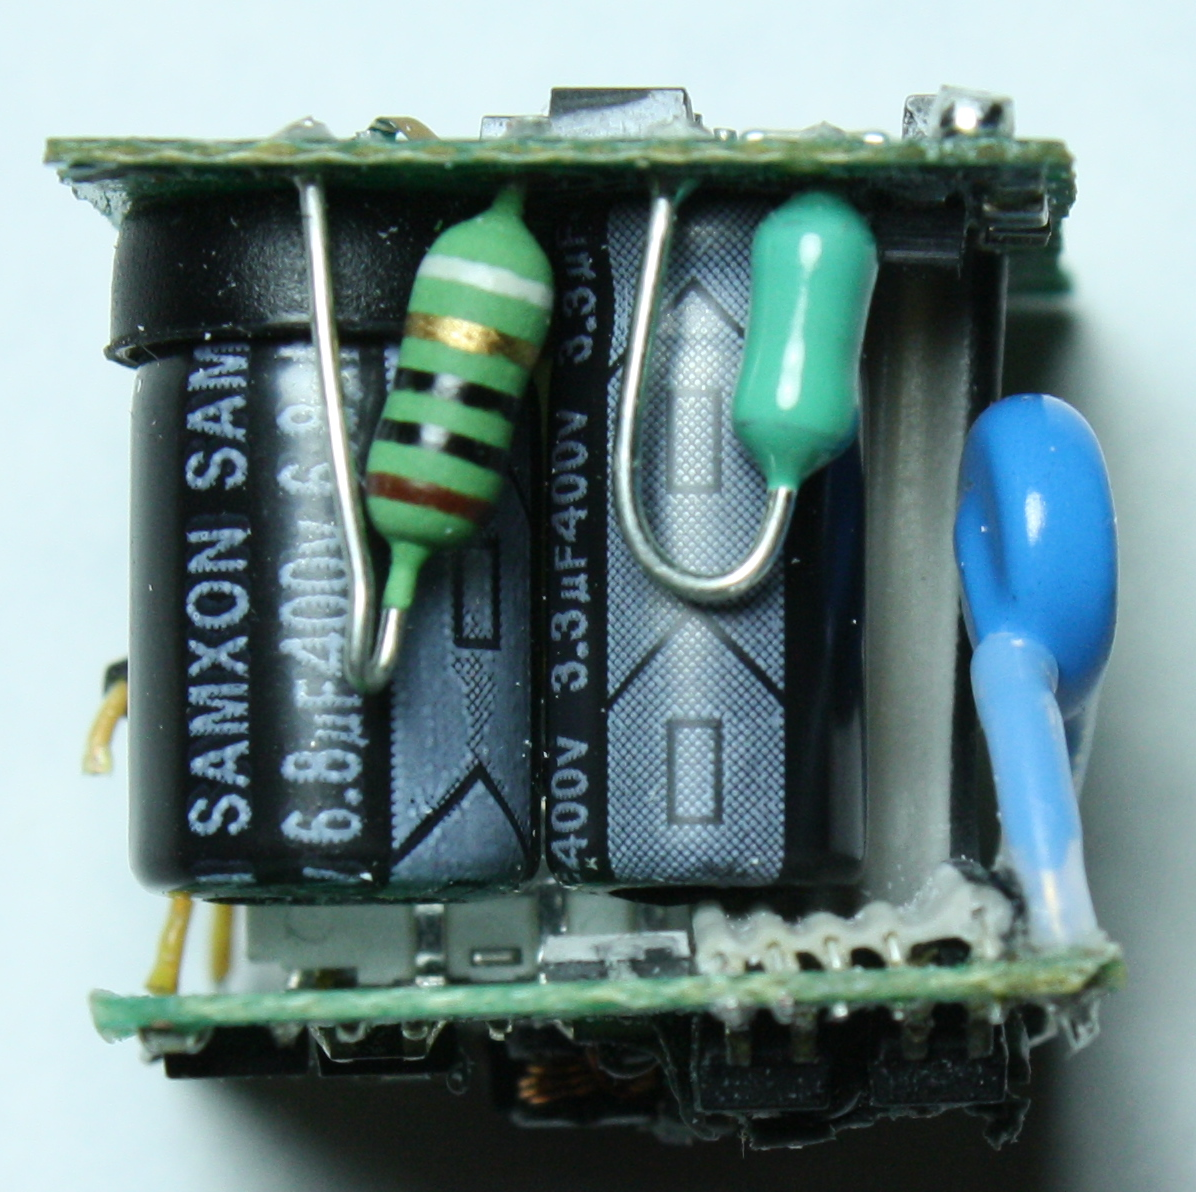 Apple Iphone Charger Teardown Quality In A Tiny Expensive Package 4 Diagram Logic Board Showing The Fusible Resistor Striped Inductor Green